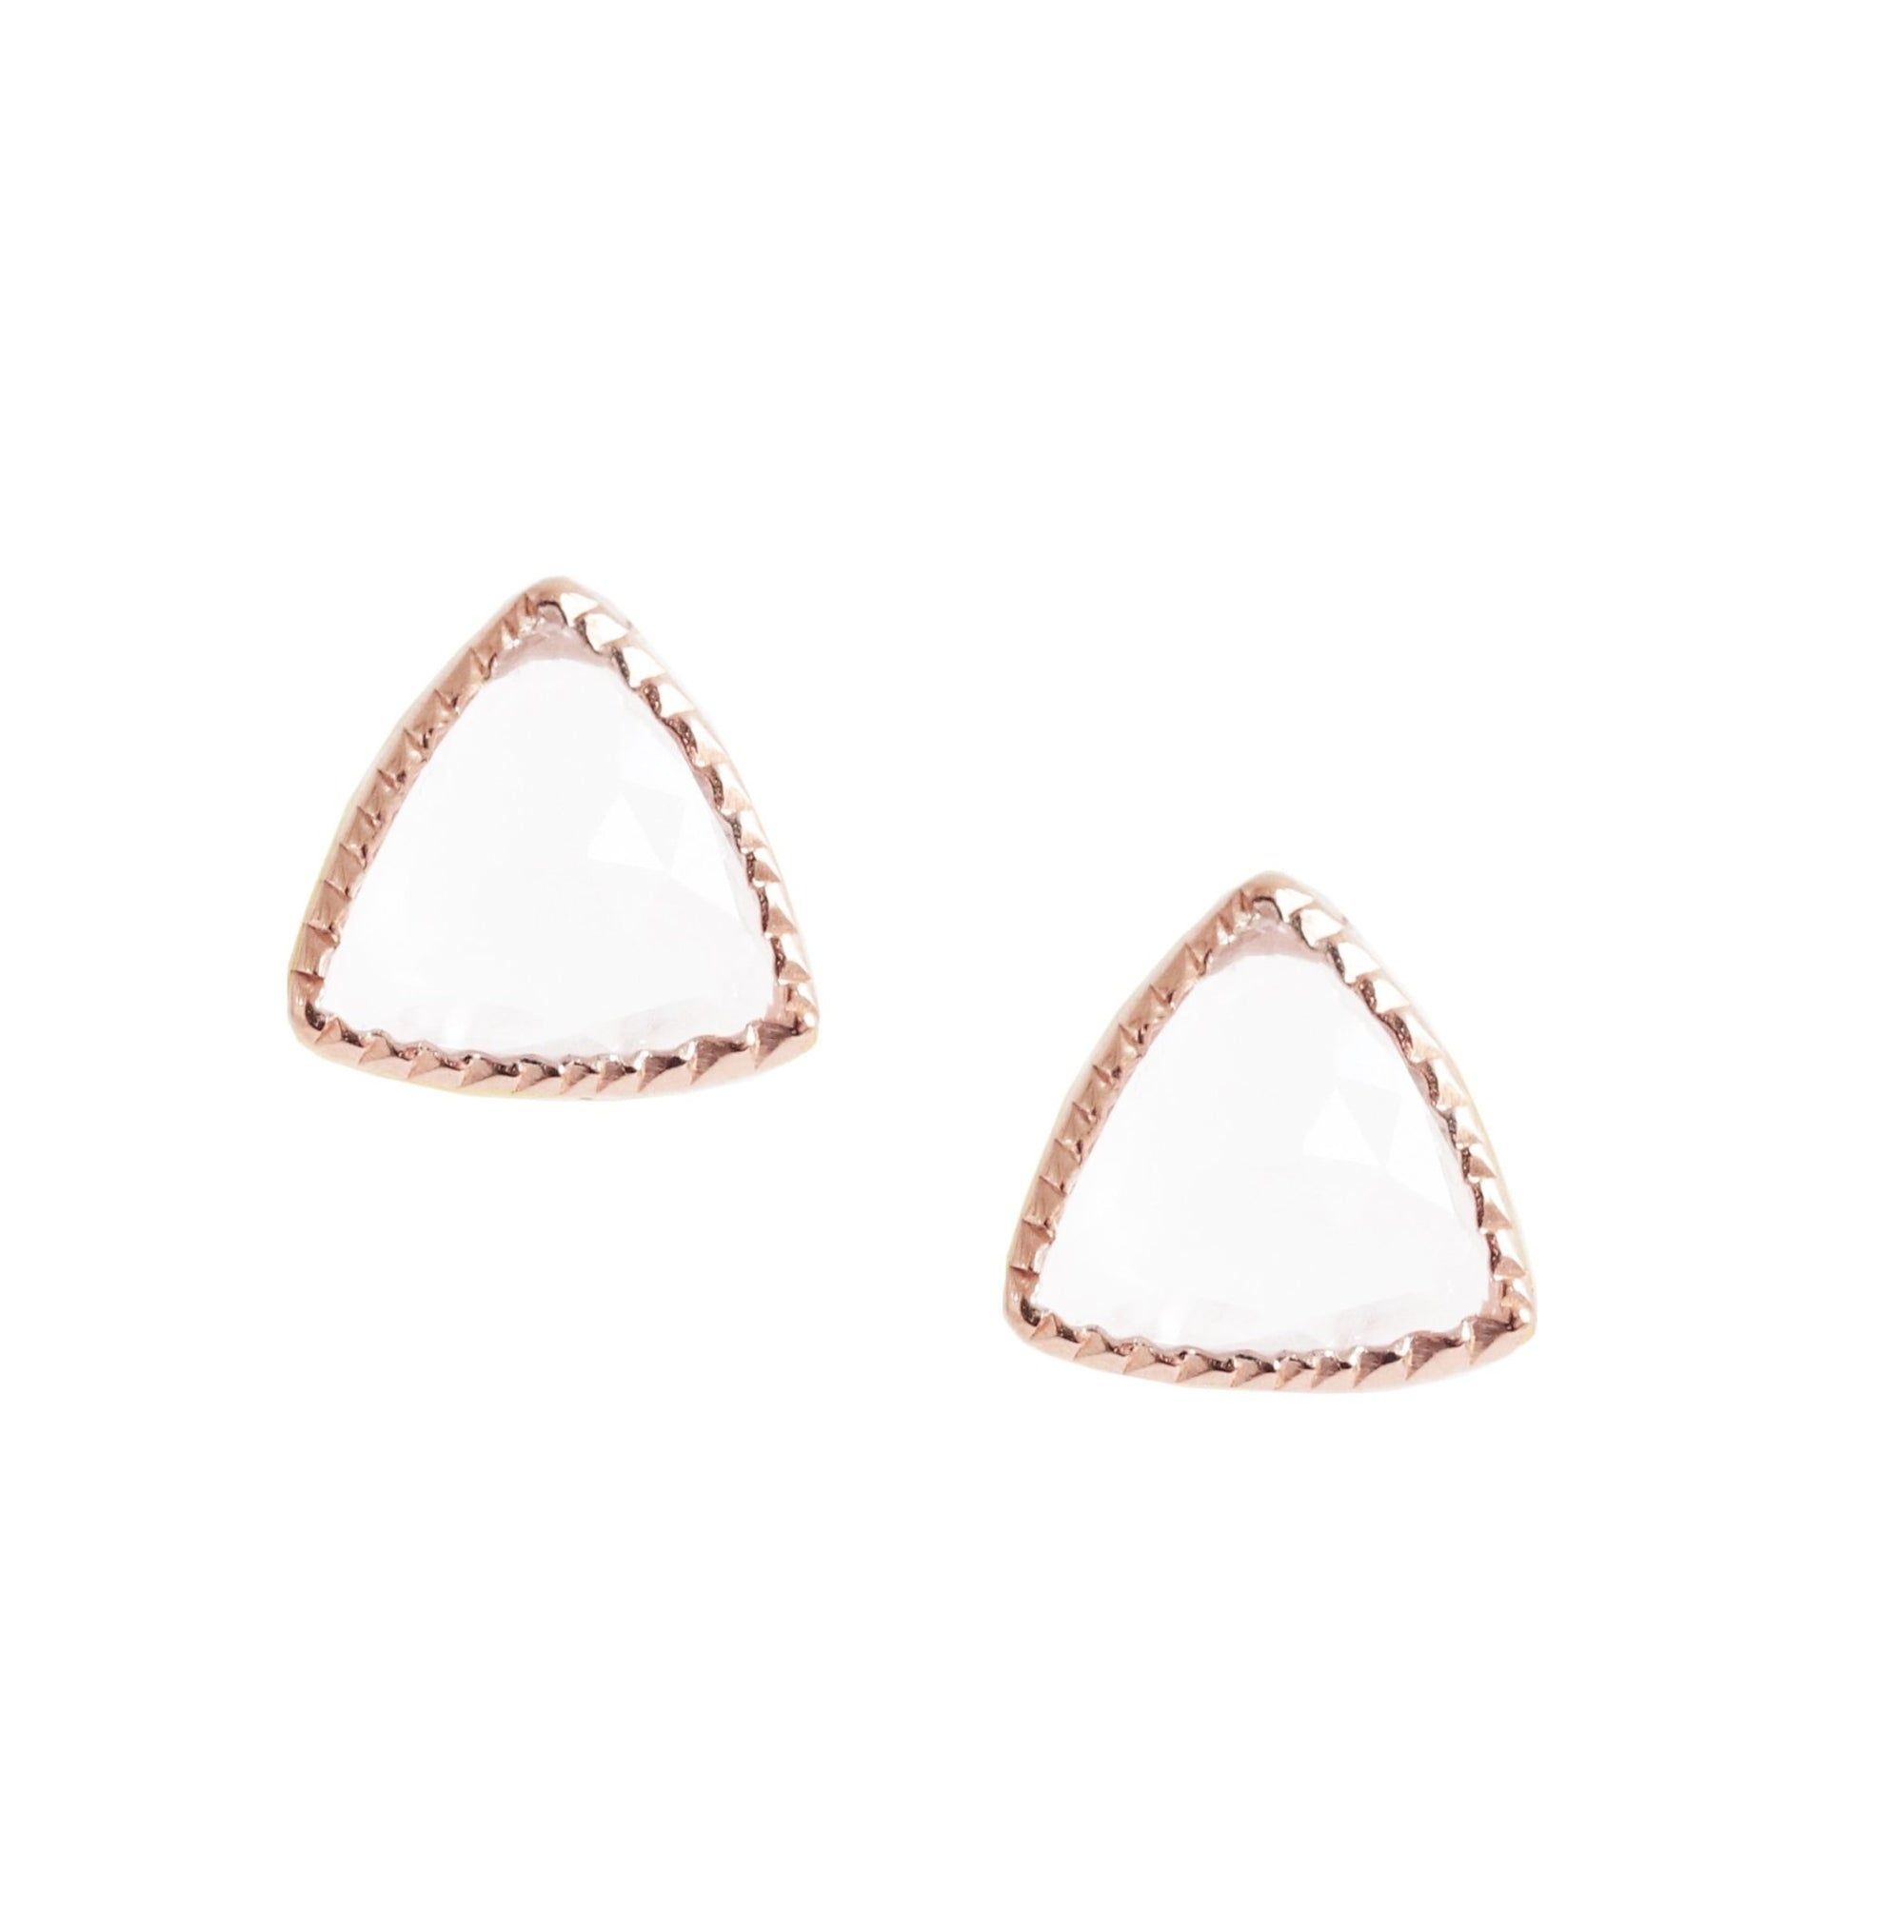 MINI FREEDOM STUD EARRINGS - WHITE TOPAZ & ROSE GOLD - SO PRETTY CARA COTTER